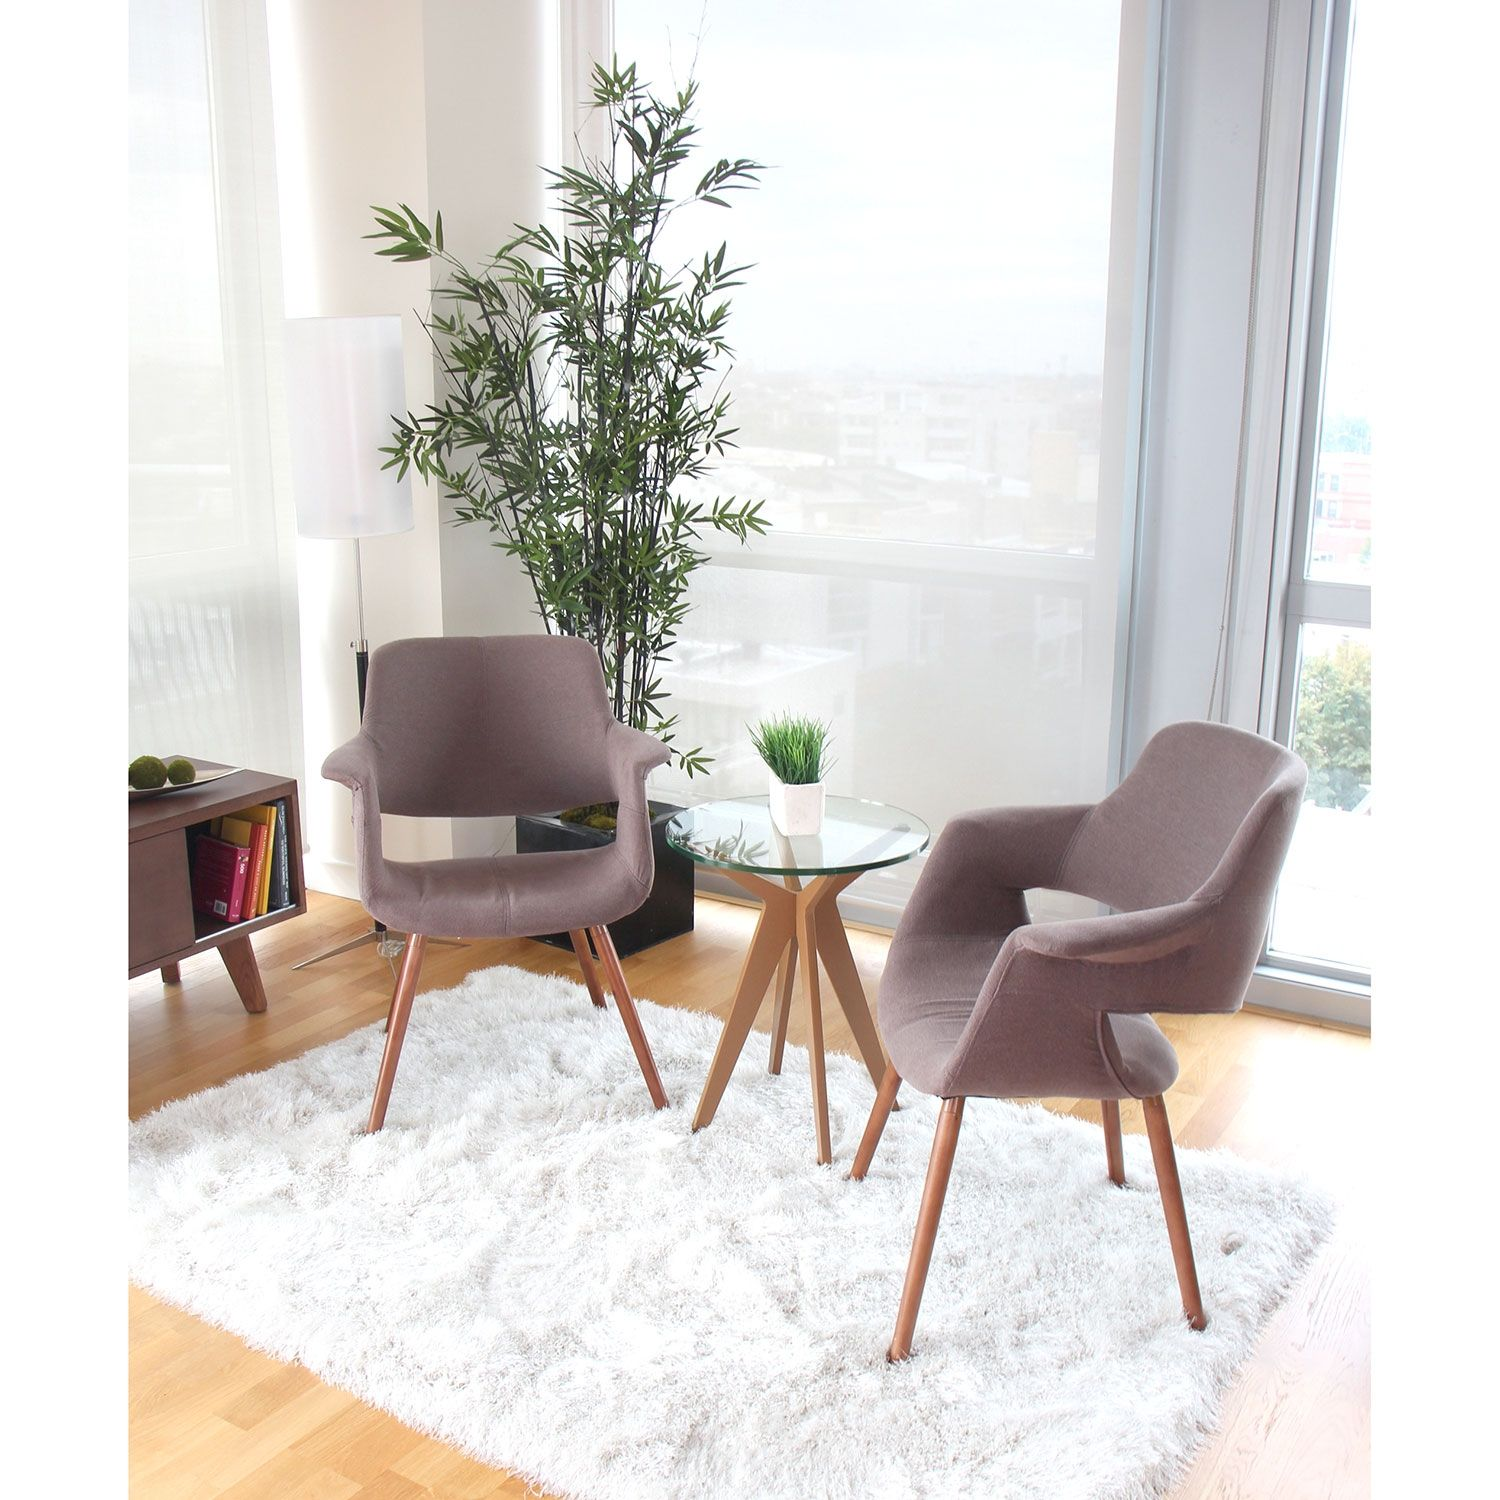 Solo Accent Chair - Brown | Soloing, City furniture and Brown